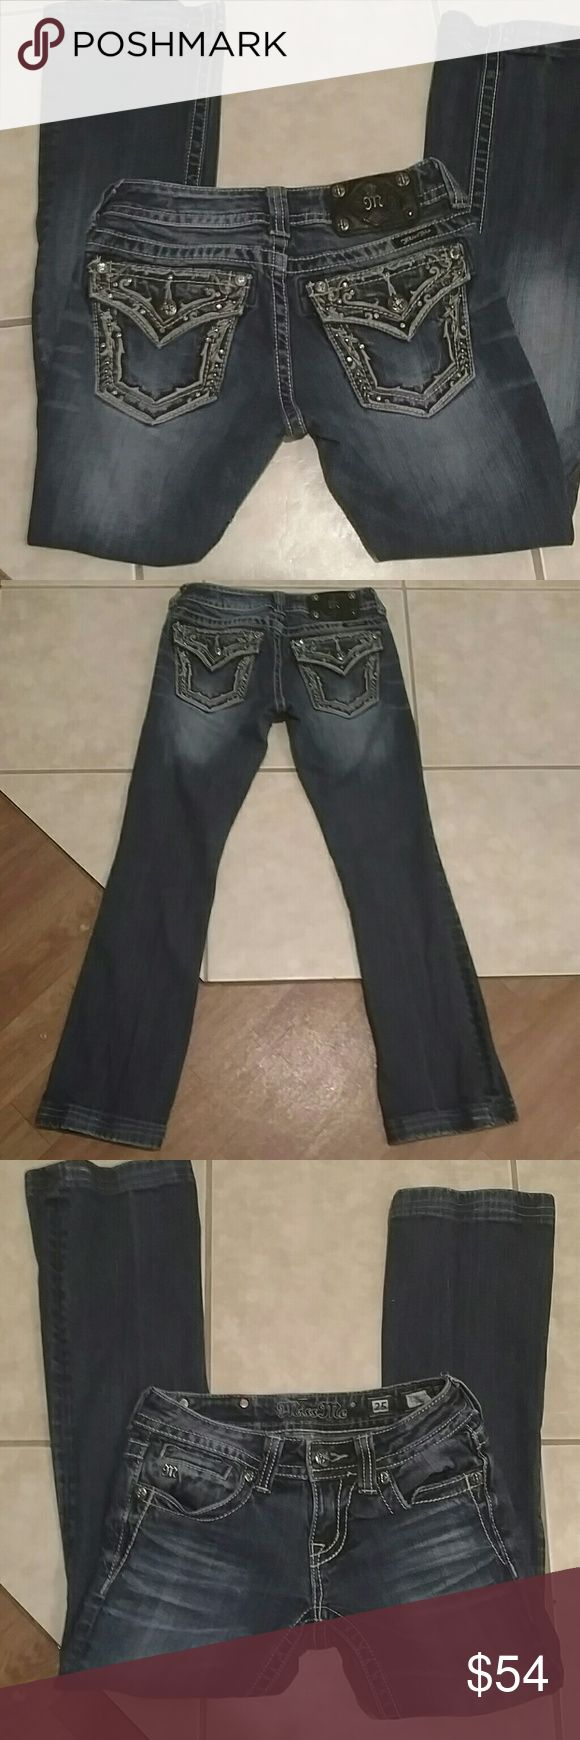 Miss me jeans Great pair of Miss me jeans size 25 hemmed to a inseam of 29 inches. Only missing one rivet on patch. Back pockets have pretty little bling and brown threading. Rise is 6 inches and waist flat measures 14 inches. 98% cotton 2% elastane Miss Me Jeans Boot Cut